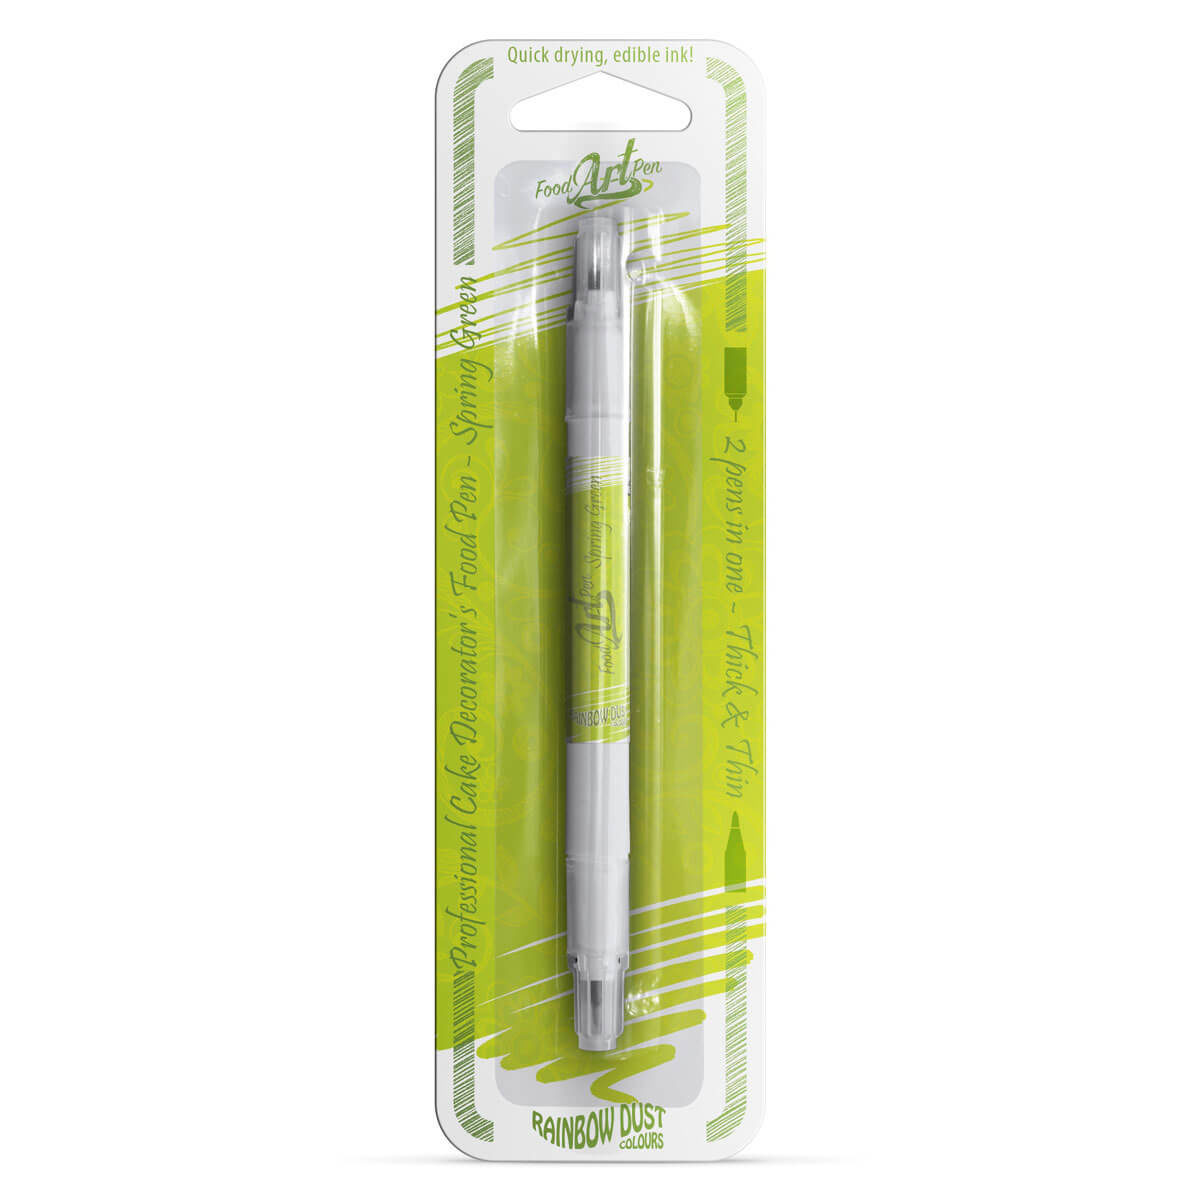 Rainbow Dust - Food Art Pen - Spring Green / Verde Limão